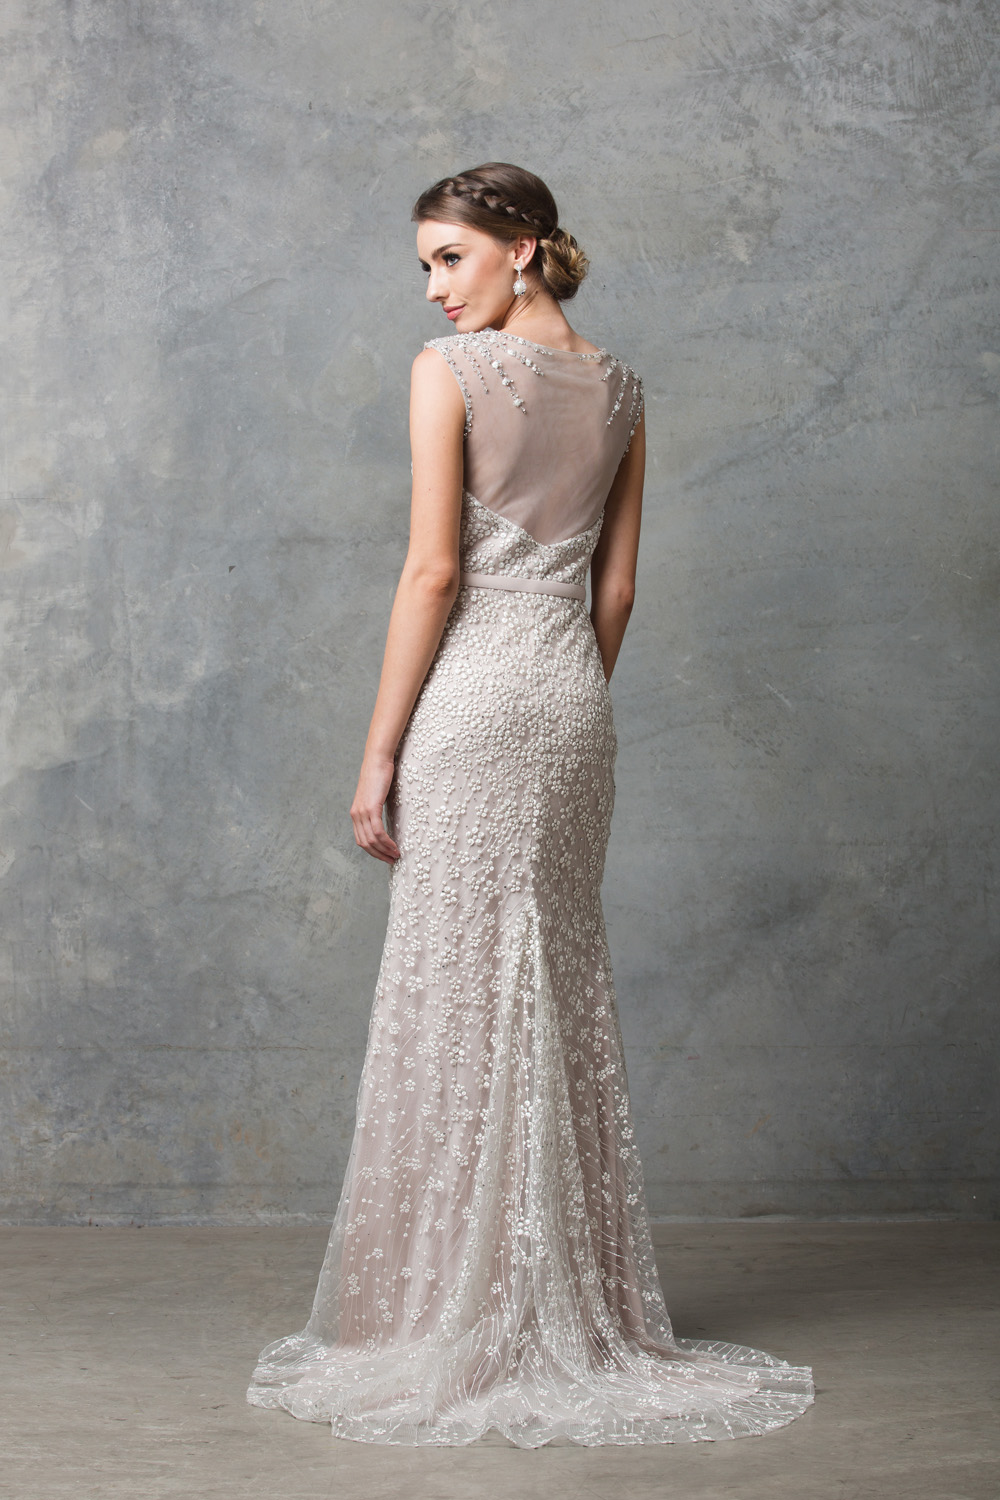 TC013 Tatiana beaded embroidered lace destination wedding dress CHAMPAGNE back